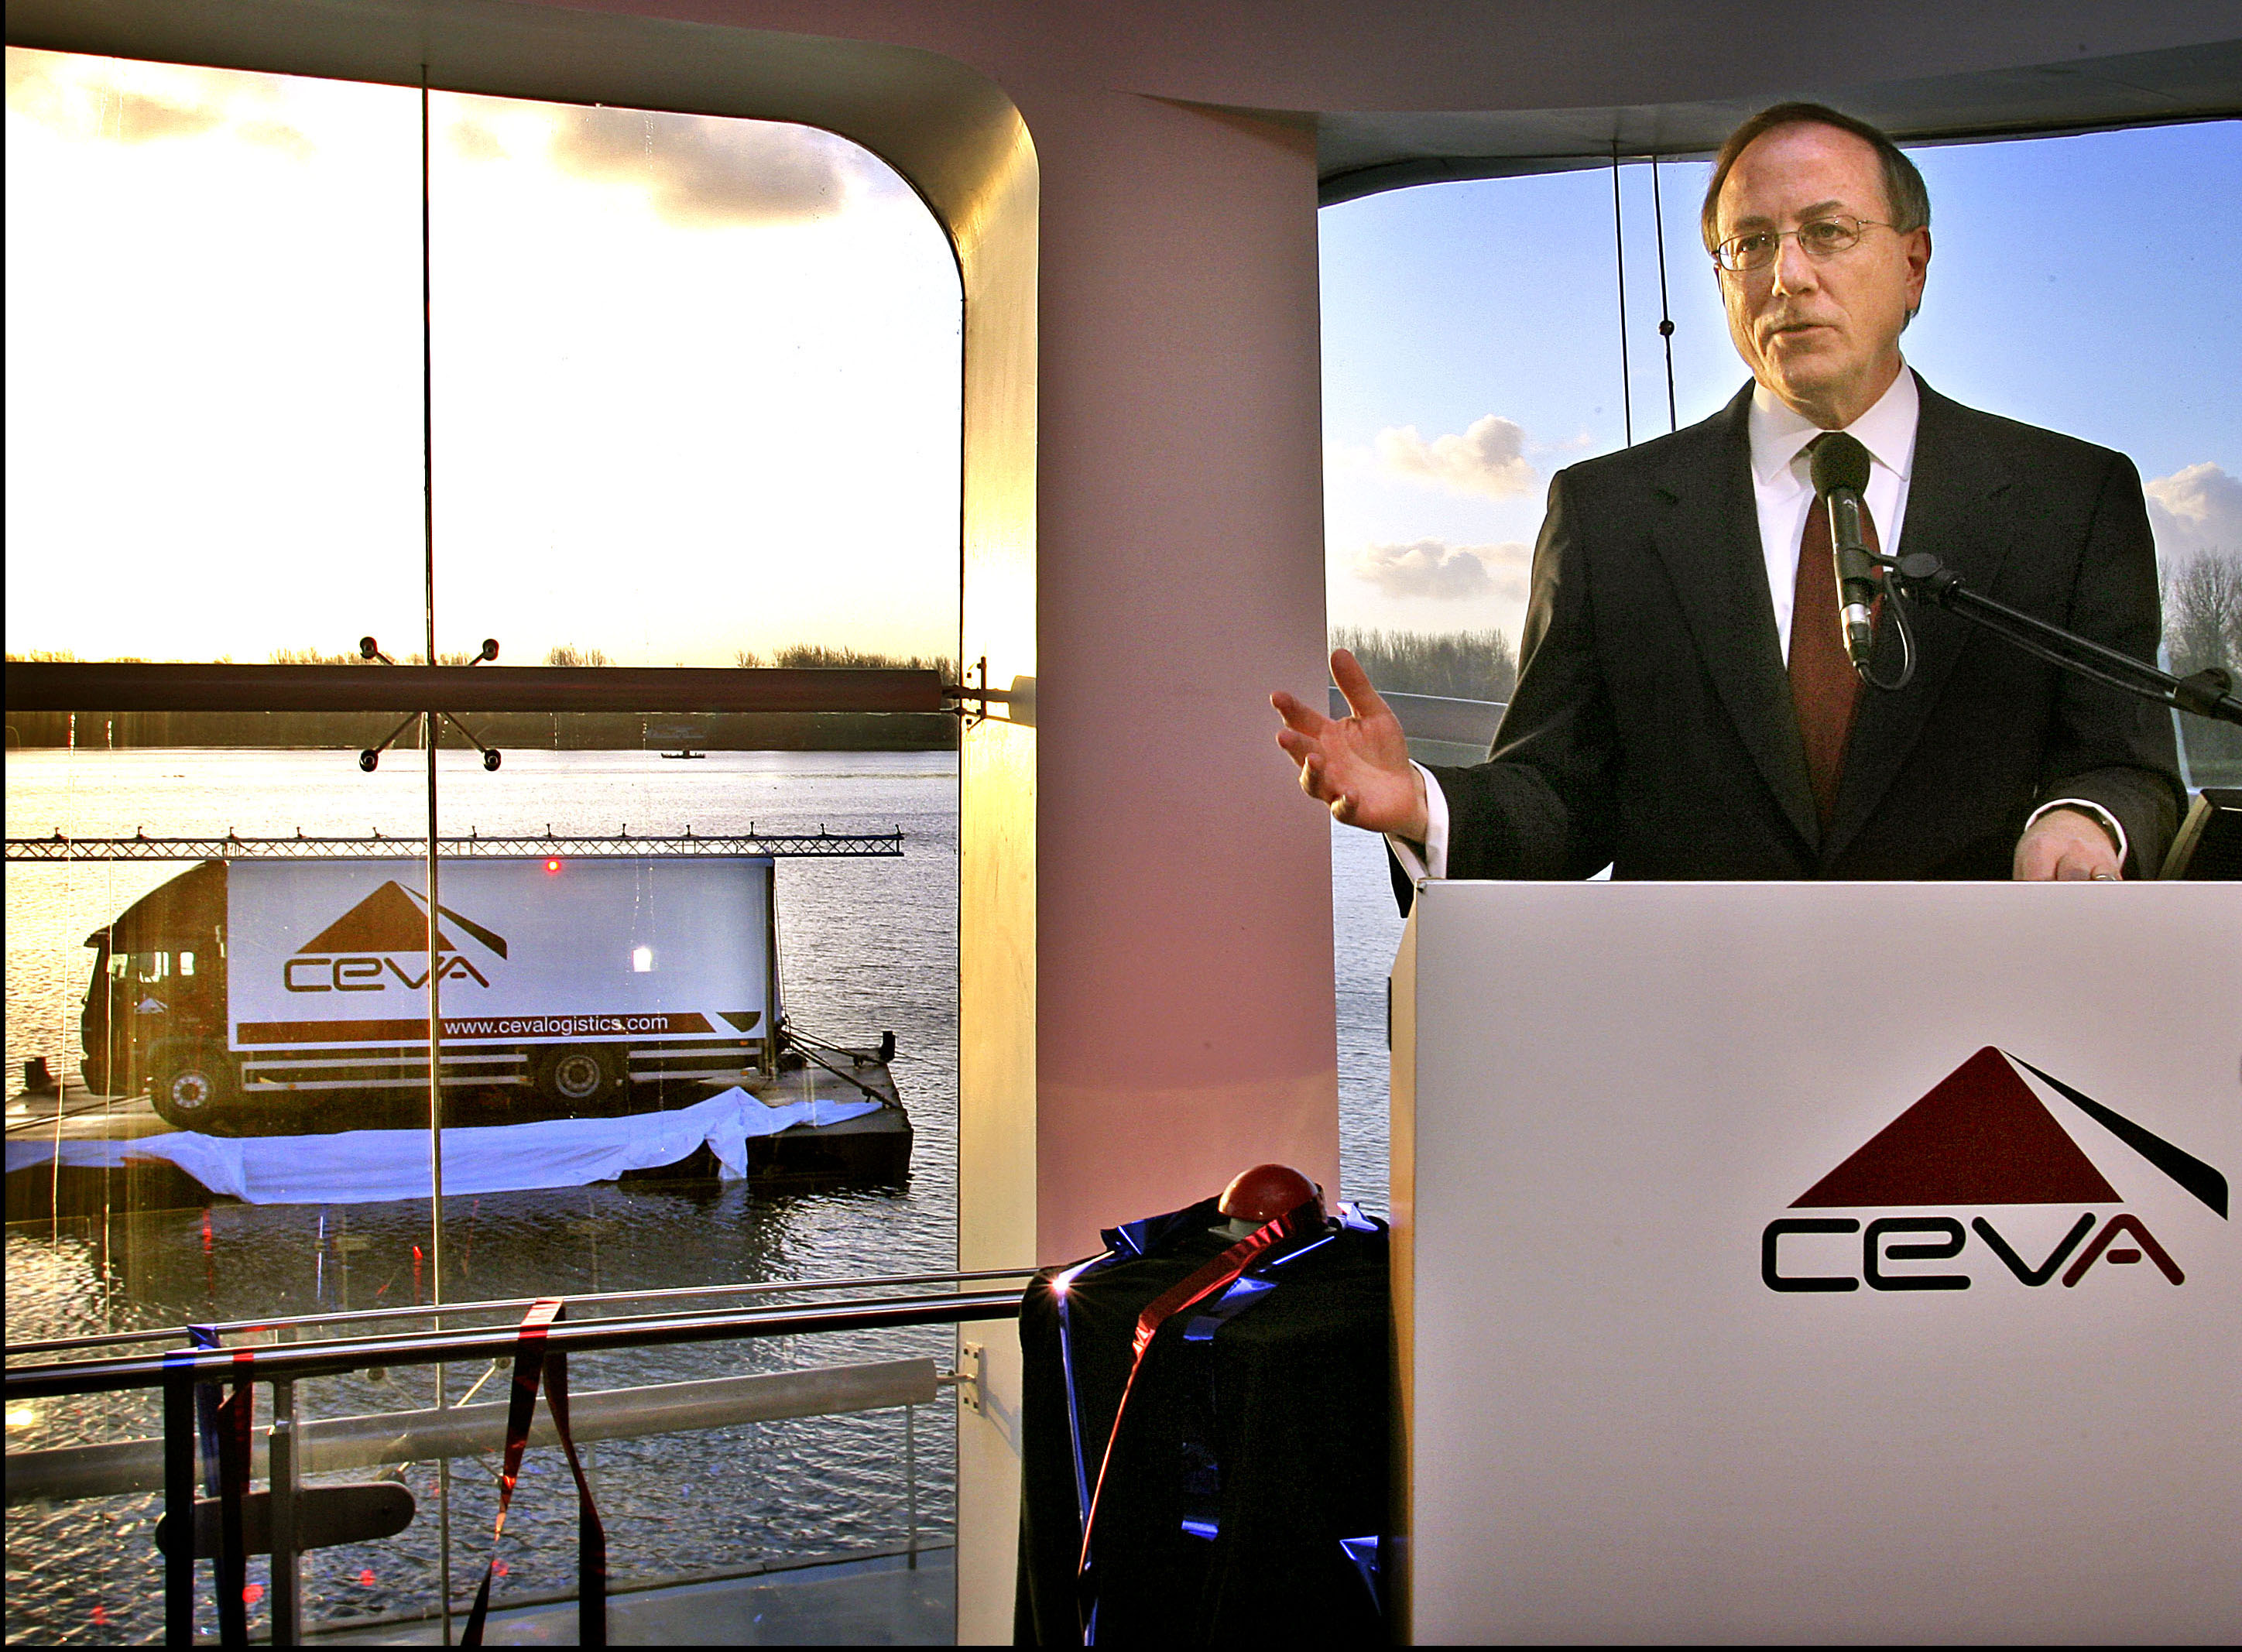 Dave Kulik, CEO, heads CEVA Logistics speaks after the unvealing of the new company brand CEVA Logistics in Hoofddorp, The Netherlands 12 December 2006.